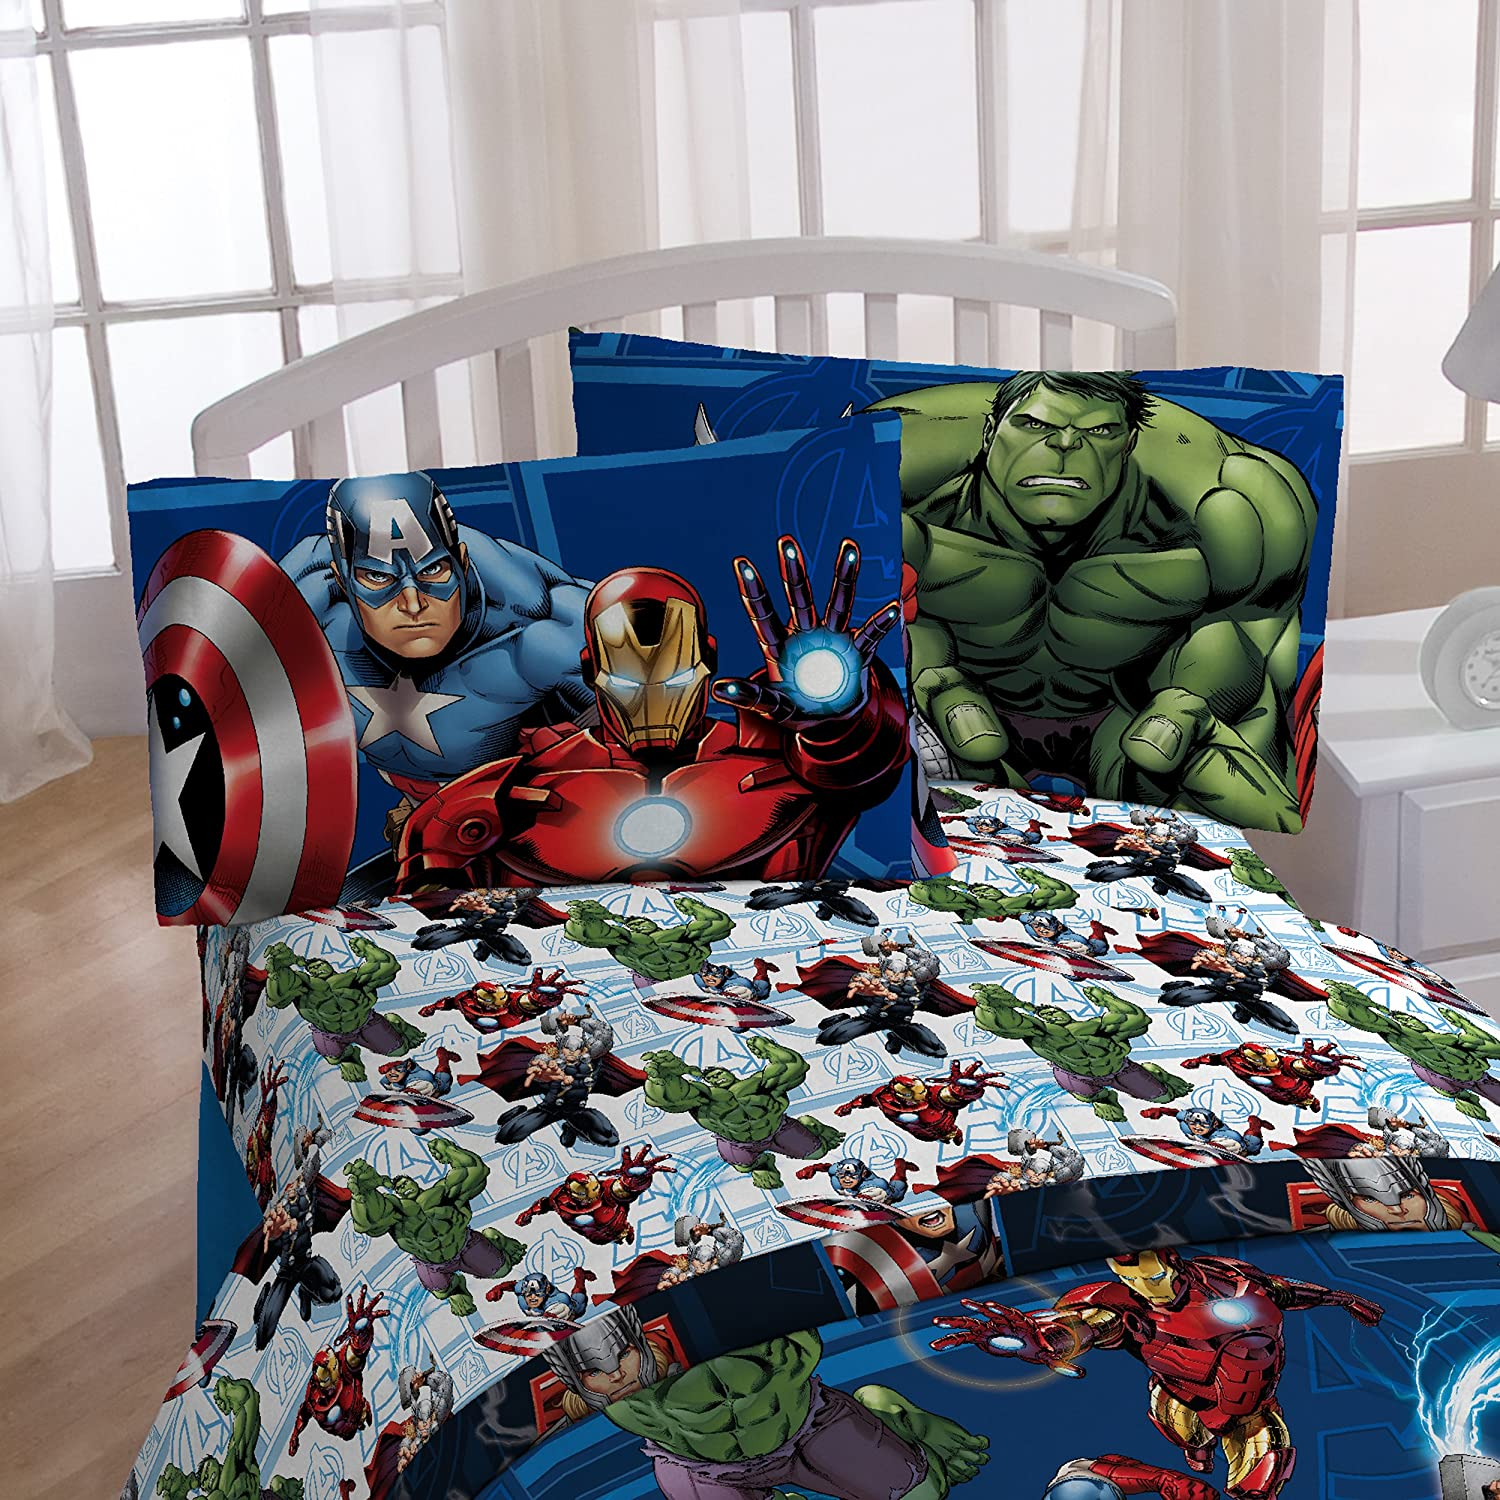 Marvel Avengers Heroic Age with Captain America, Thor, Ironman & Hulk